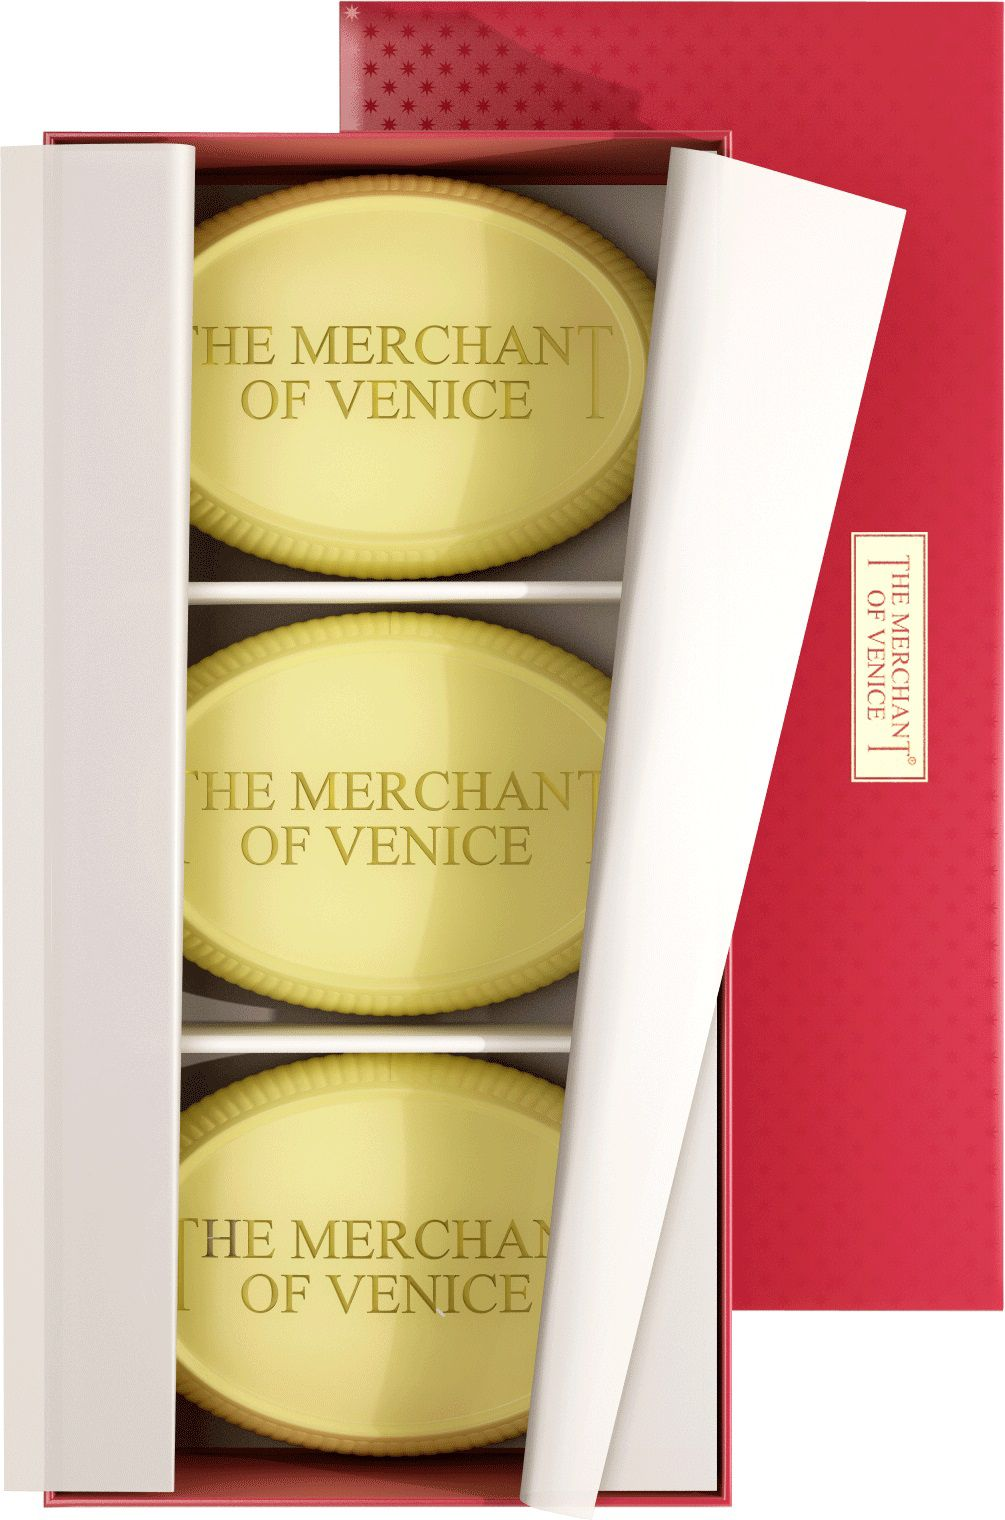 The Merchant Of Venice The Merchant Of Venice Set of Assorted Oriental Bath Soaps 200g x 3